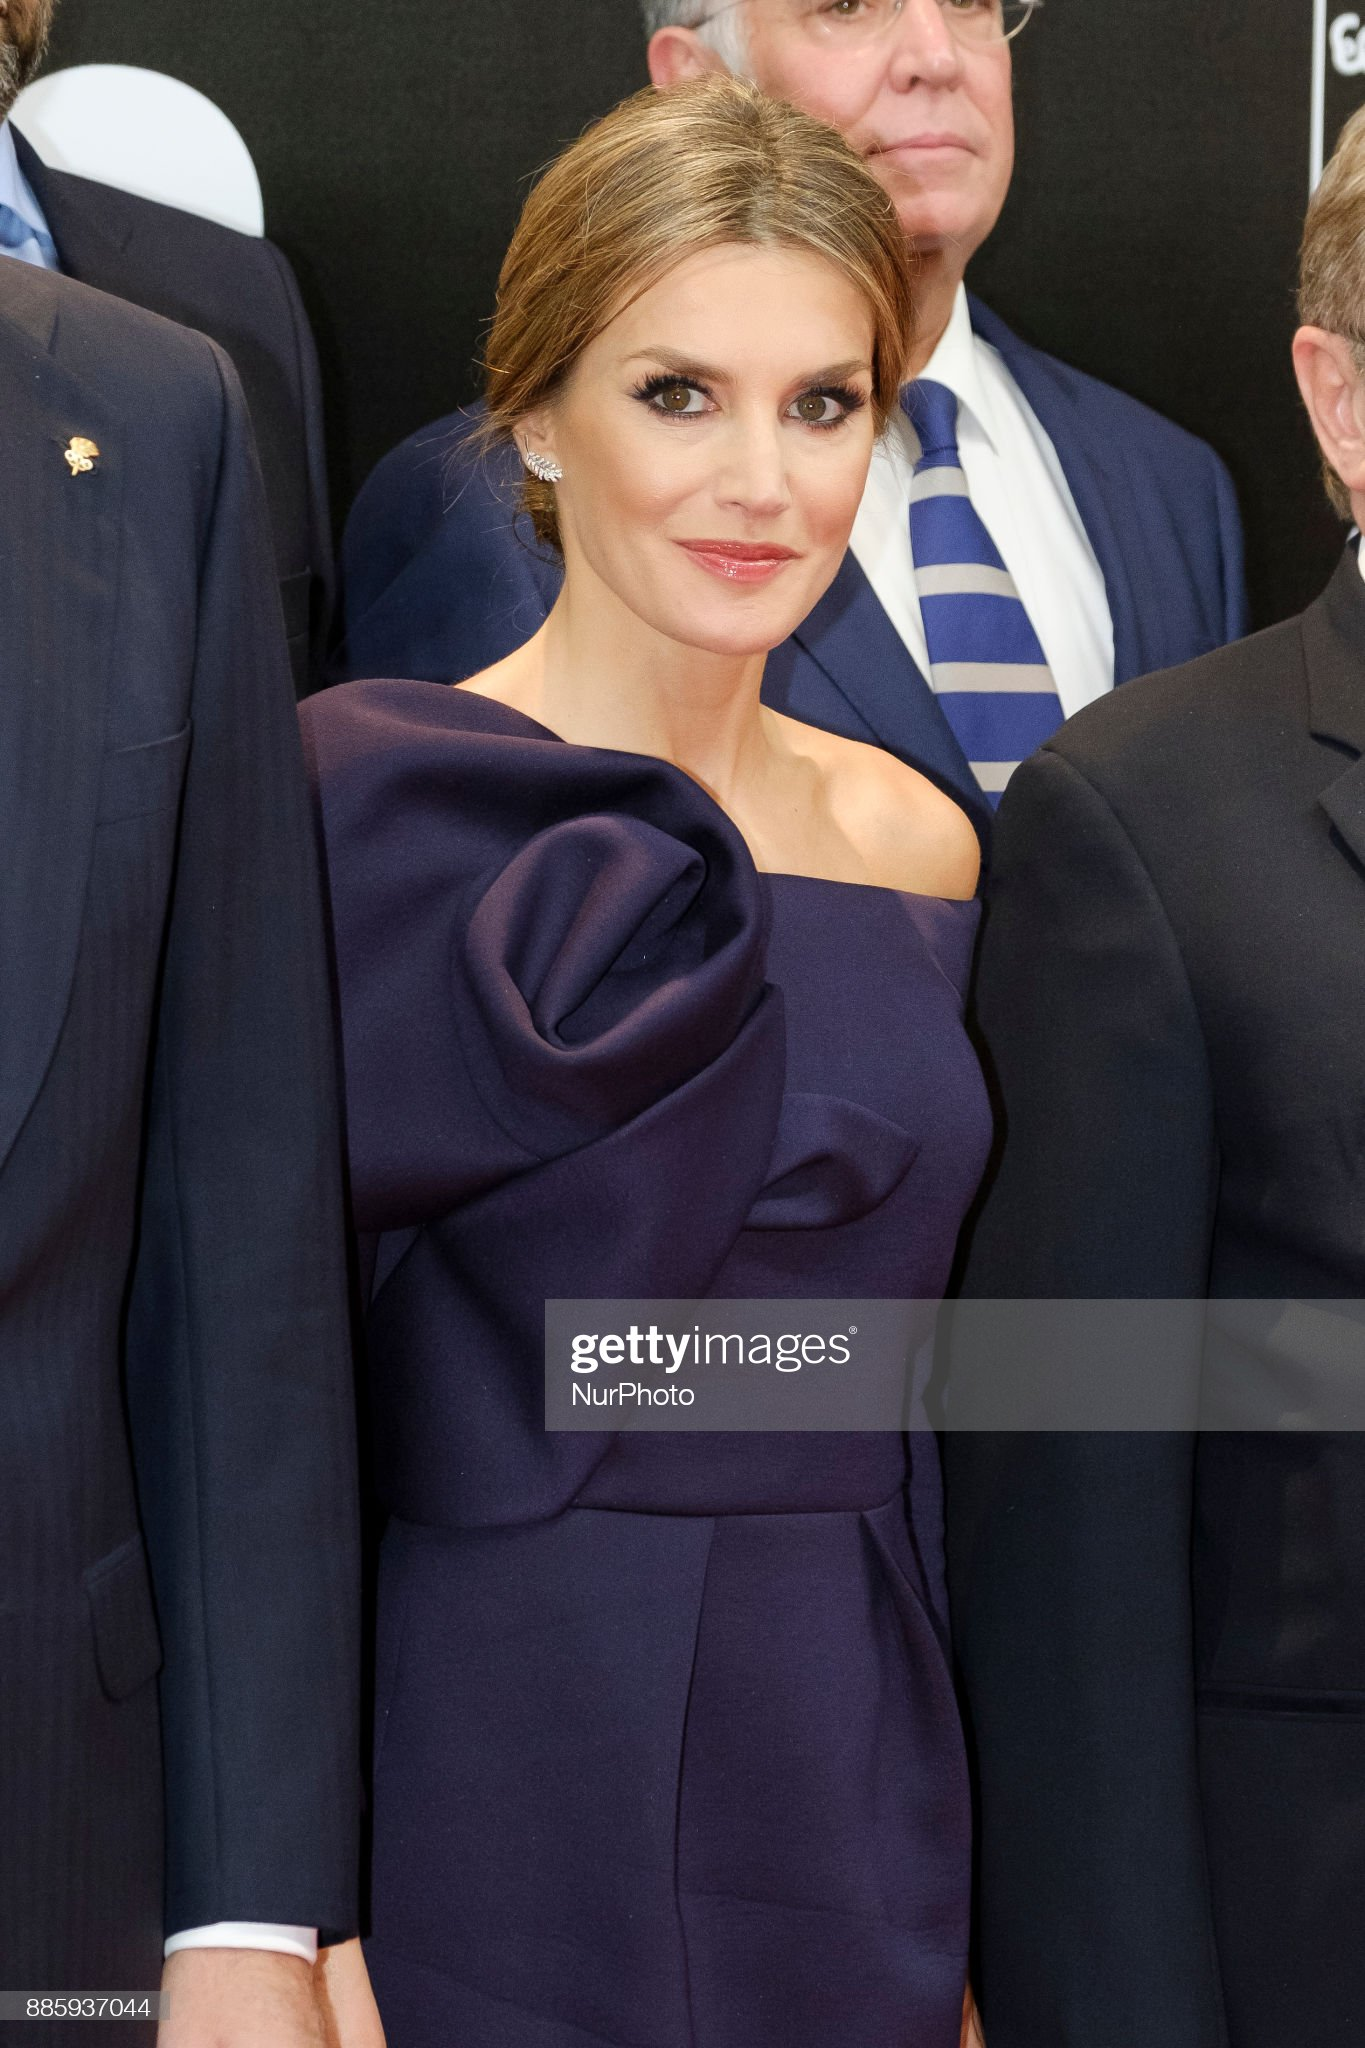 Spanish Royals Attend 'As Del Deporte' Awards and 'As' Newspaper 50th Anniversary Party : News Photo